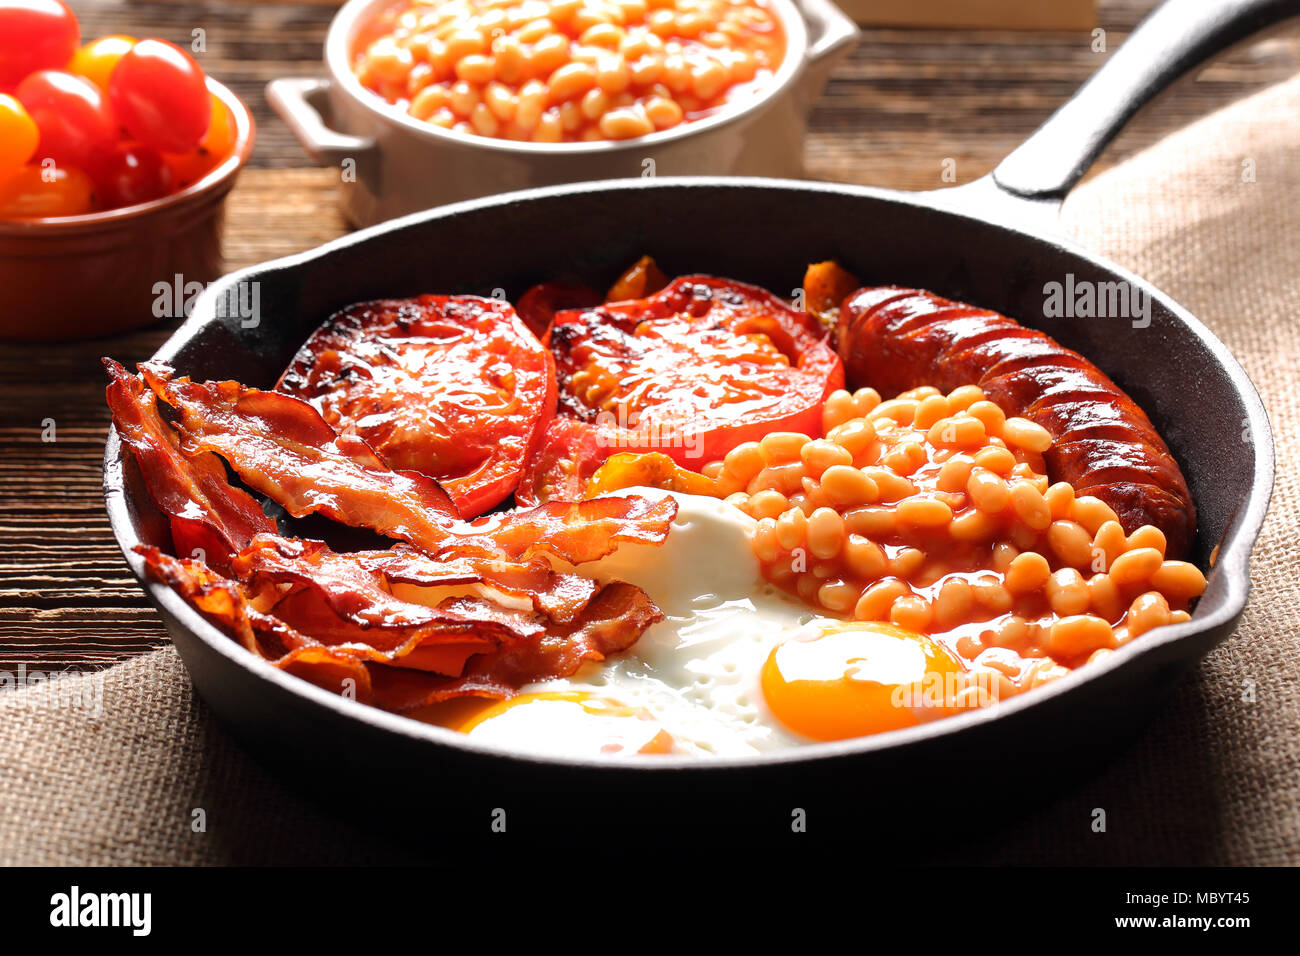 English Breakfast with sausages, grilled tomatoes, egg, bacon and beans on frying pan. Stock Photo